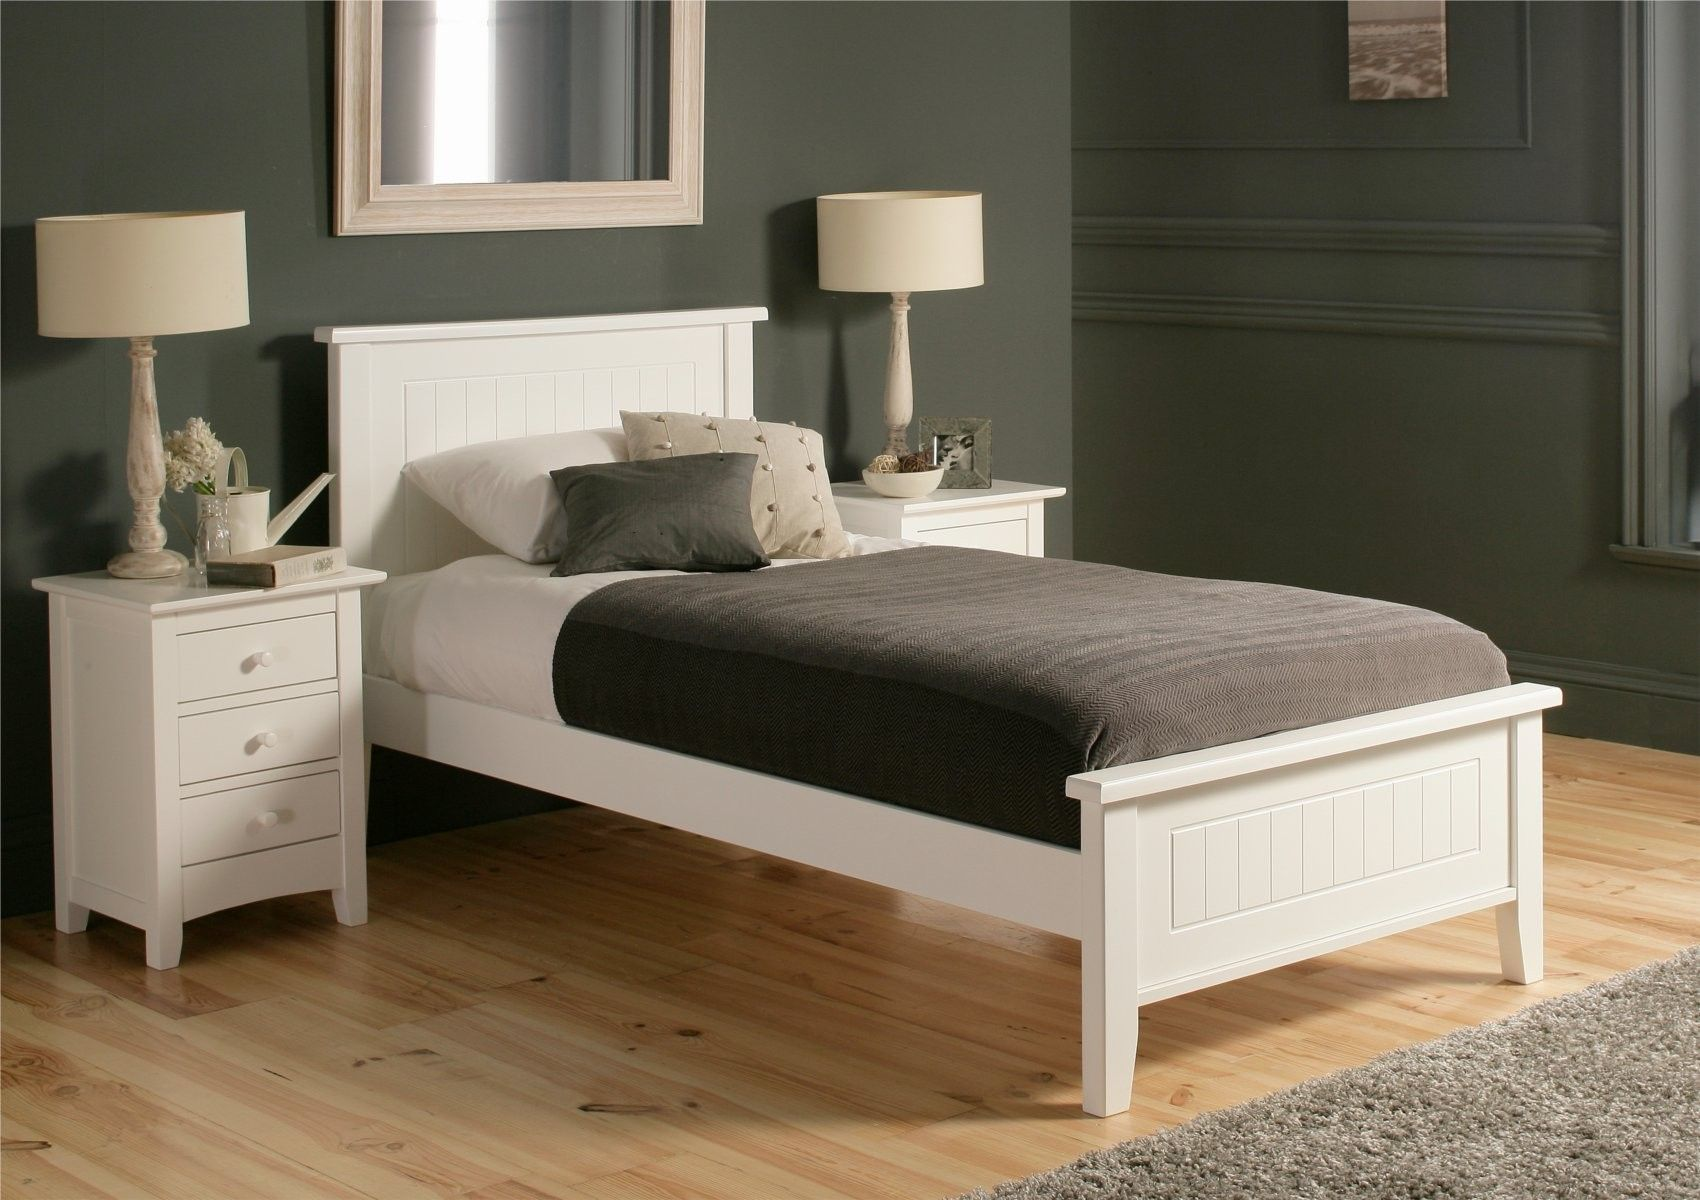 White Frame Wood Google Search Dream Home Pinterest Bed Bed